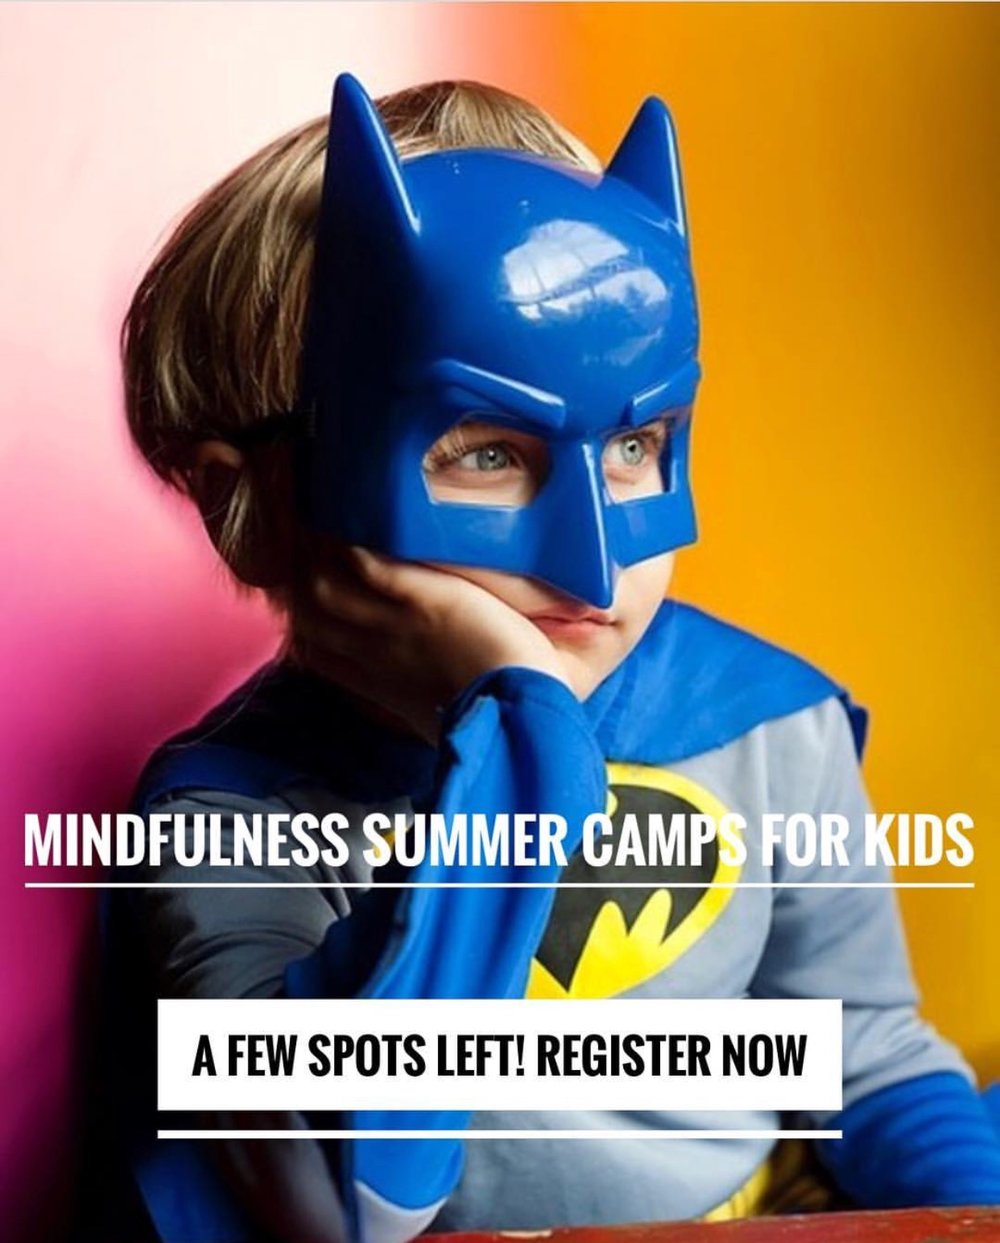 Beginning Mindfulness for Kids ages 5-10 (Inward Bound) - Tuesday, June 26th 9:00am-12:00pmORWednesday, June 27th 9:00am-12:00pmat Gathered and Grounded 533 W. Howard Ave. Decatur, GA**Carpool services are available from East Cobb/Marietta